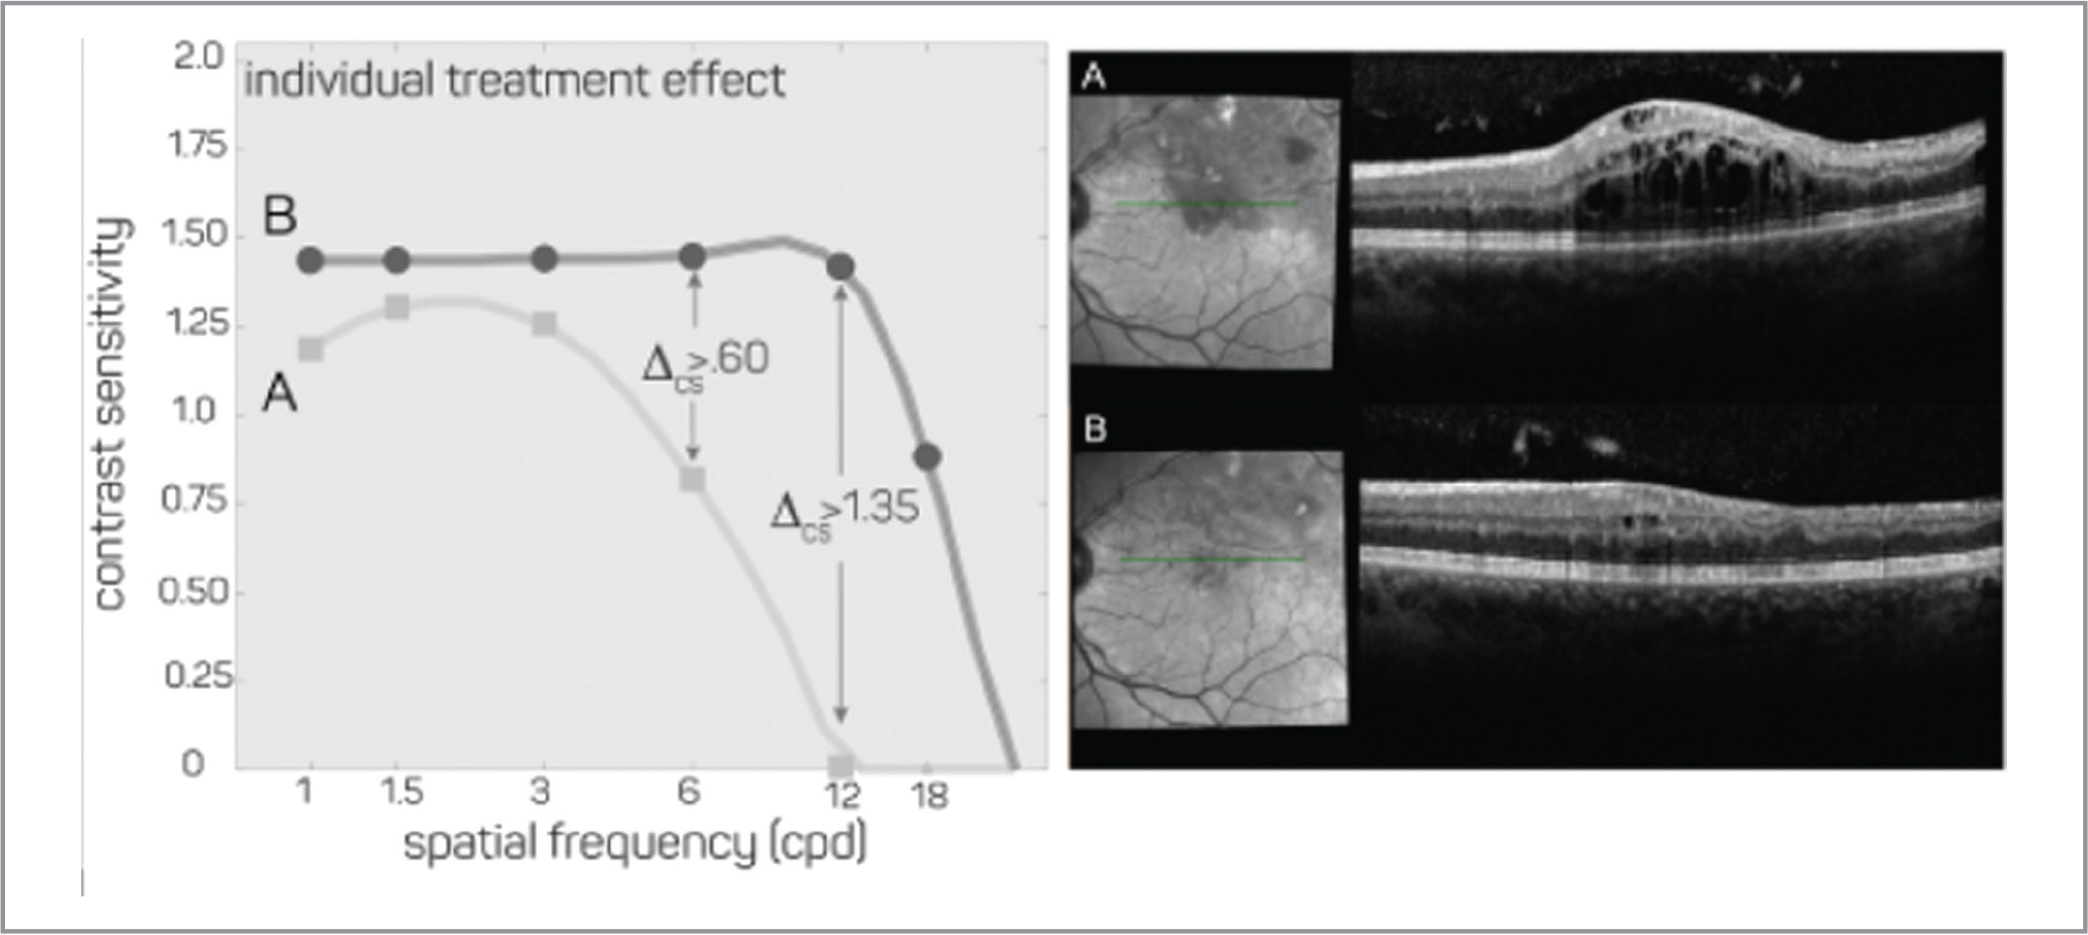 Correspondence of structural and functional improvements in one patient. Contrast sensitivity (CS) functions and optical coherence tomography images are presented for one eye showing substantial fluid resolution following an anti-vascular endothelial growth factor (VEGF) injection. Visual acuity (VA) testing demonstrated a treatment effect that was less than 2 lines: (from 20/30+2 to 20/20). Left: CS functions corresponding to before (A) and after (B) treatment injection. Relative to VA gains (< 0.20 logMAR), the CS gains are substantial and meaningful with > 0.60 logCS improvement for frequencies in the range of cycles per degree (cpd) to 18 cpd. Right: Significant macular edema present in treatment-naive eye of one patient (A) and near resolution of macular edema following anti-VEGF treatment (B).